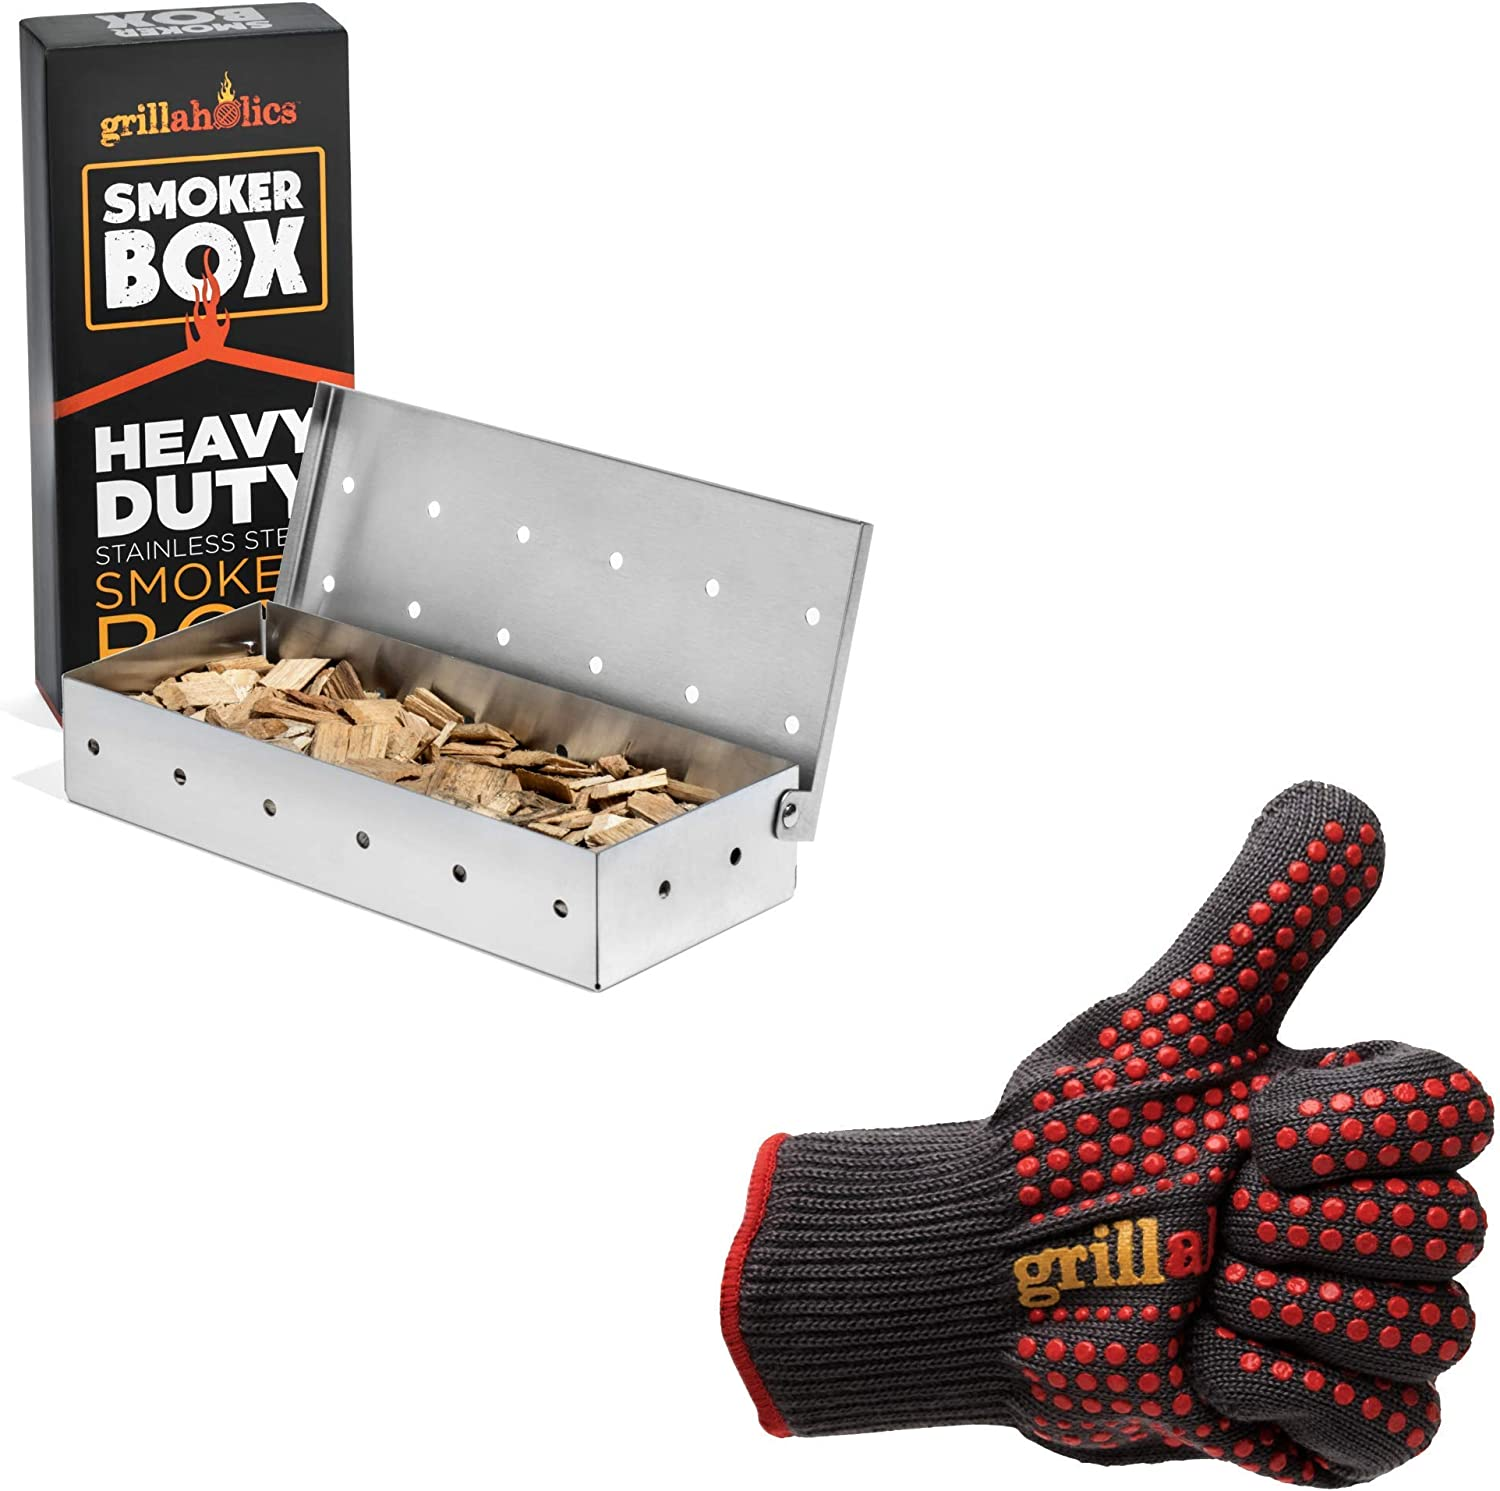 Grillaholics Stainless Steel Smoker Box & Heat Resistant Grill Gloves Bundle